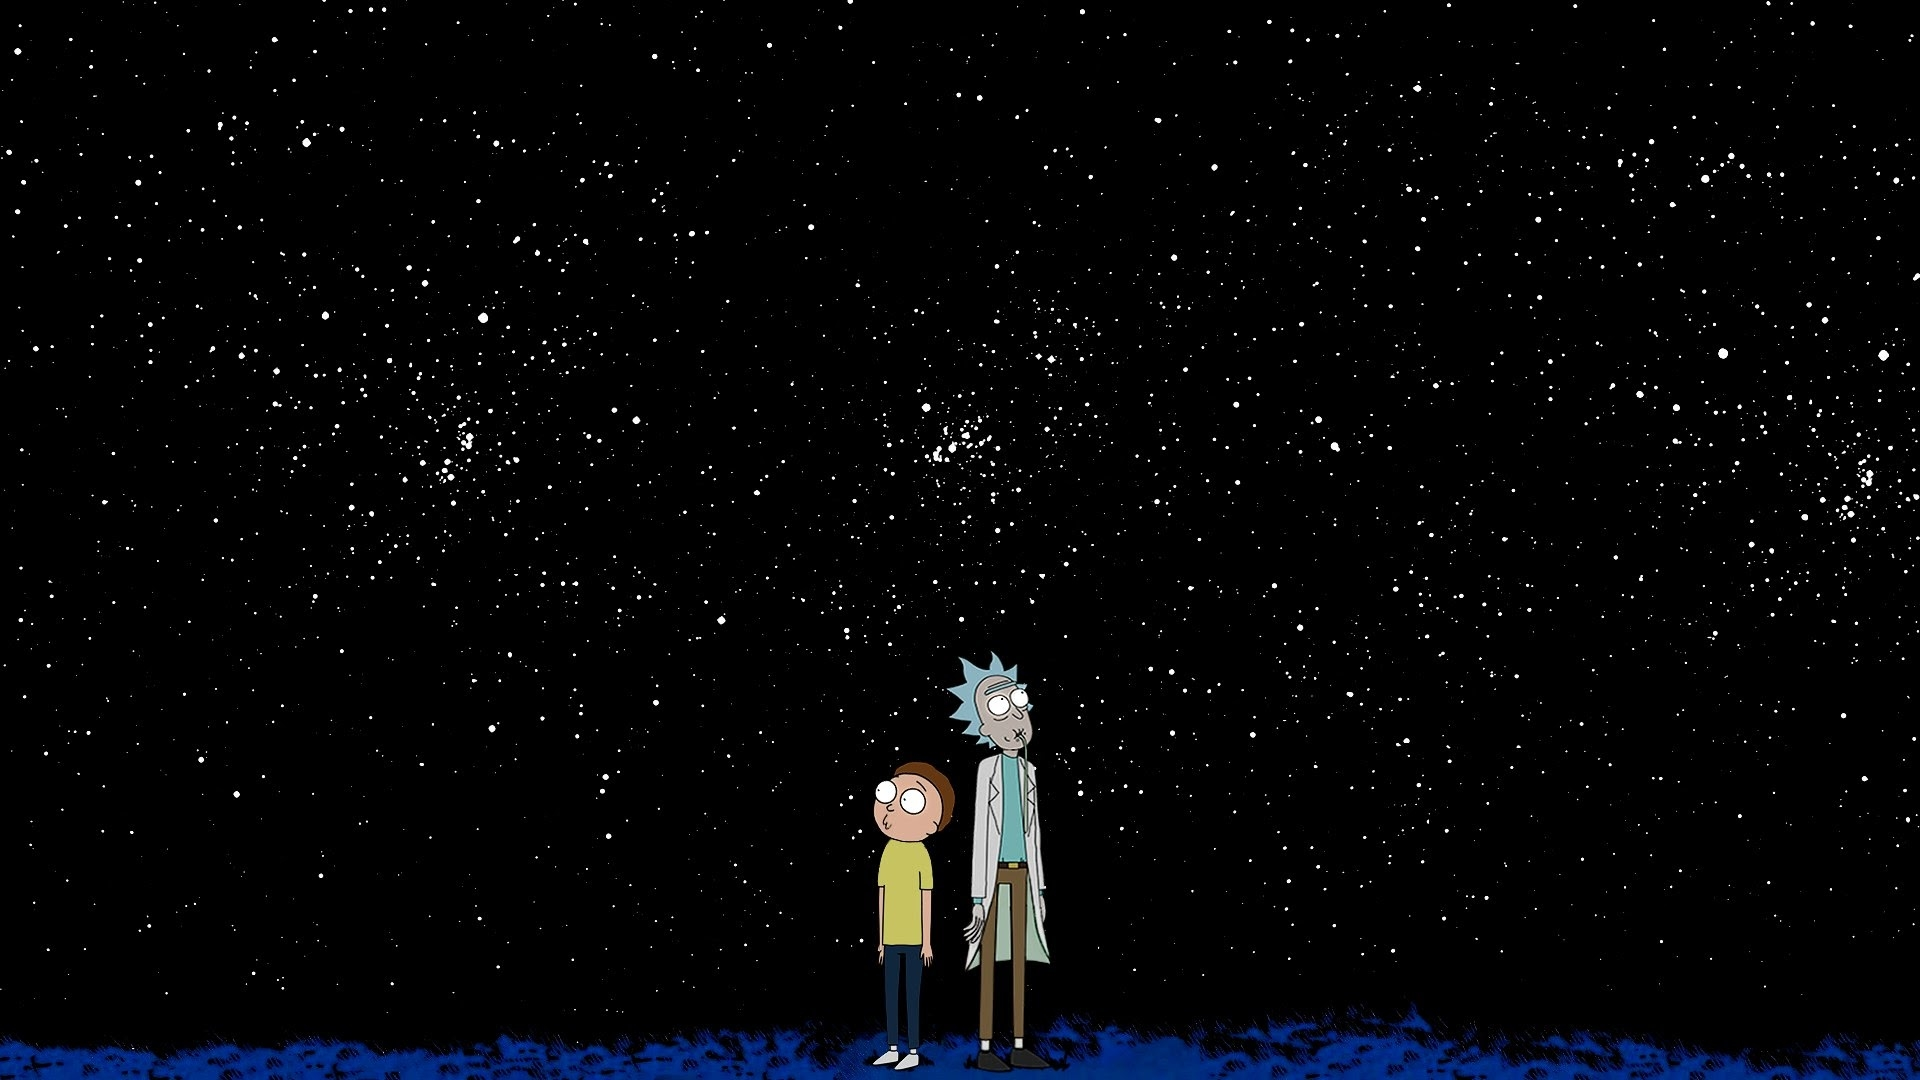 960x544 Rick And Morty Space 960x544 Resolution Wallpaper Hd Tv Series 4k Wallpapers Images Photos And Background